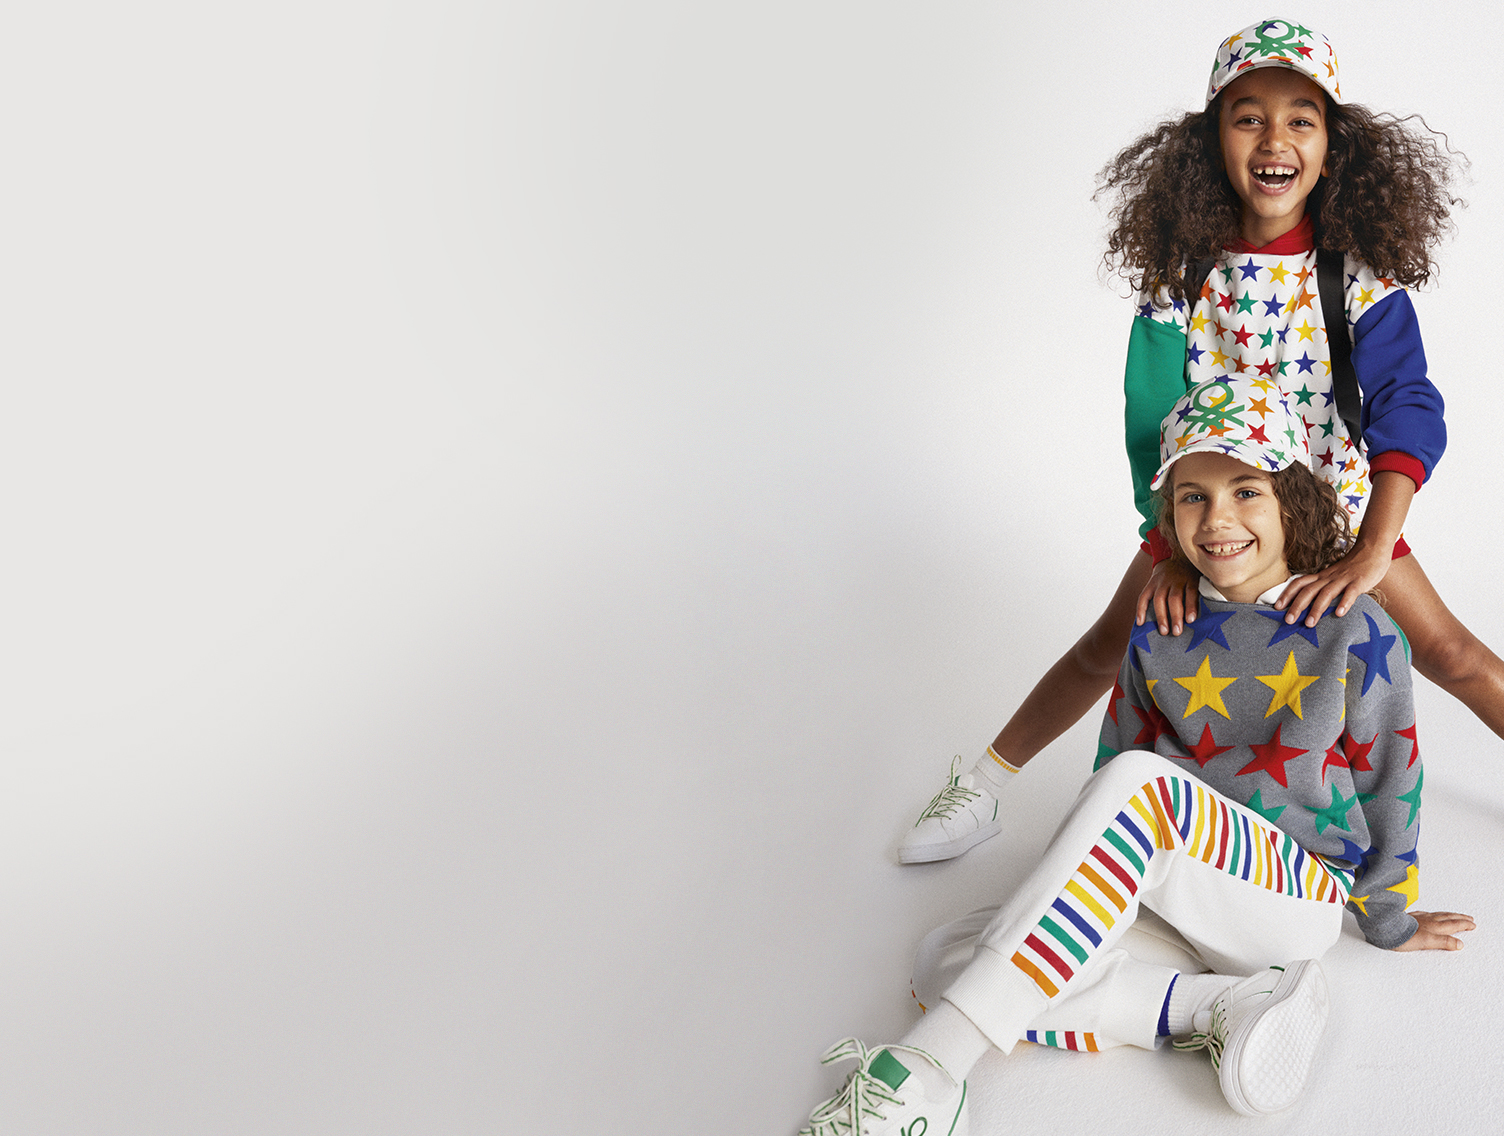 Prehistórico Tranquilizar Caliza  Stars & StripesCollection: Kid Girl (3 months - 4 years) 2020 | Benetton